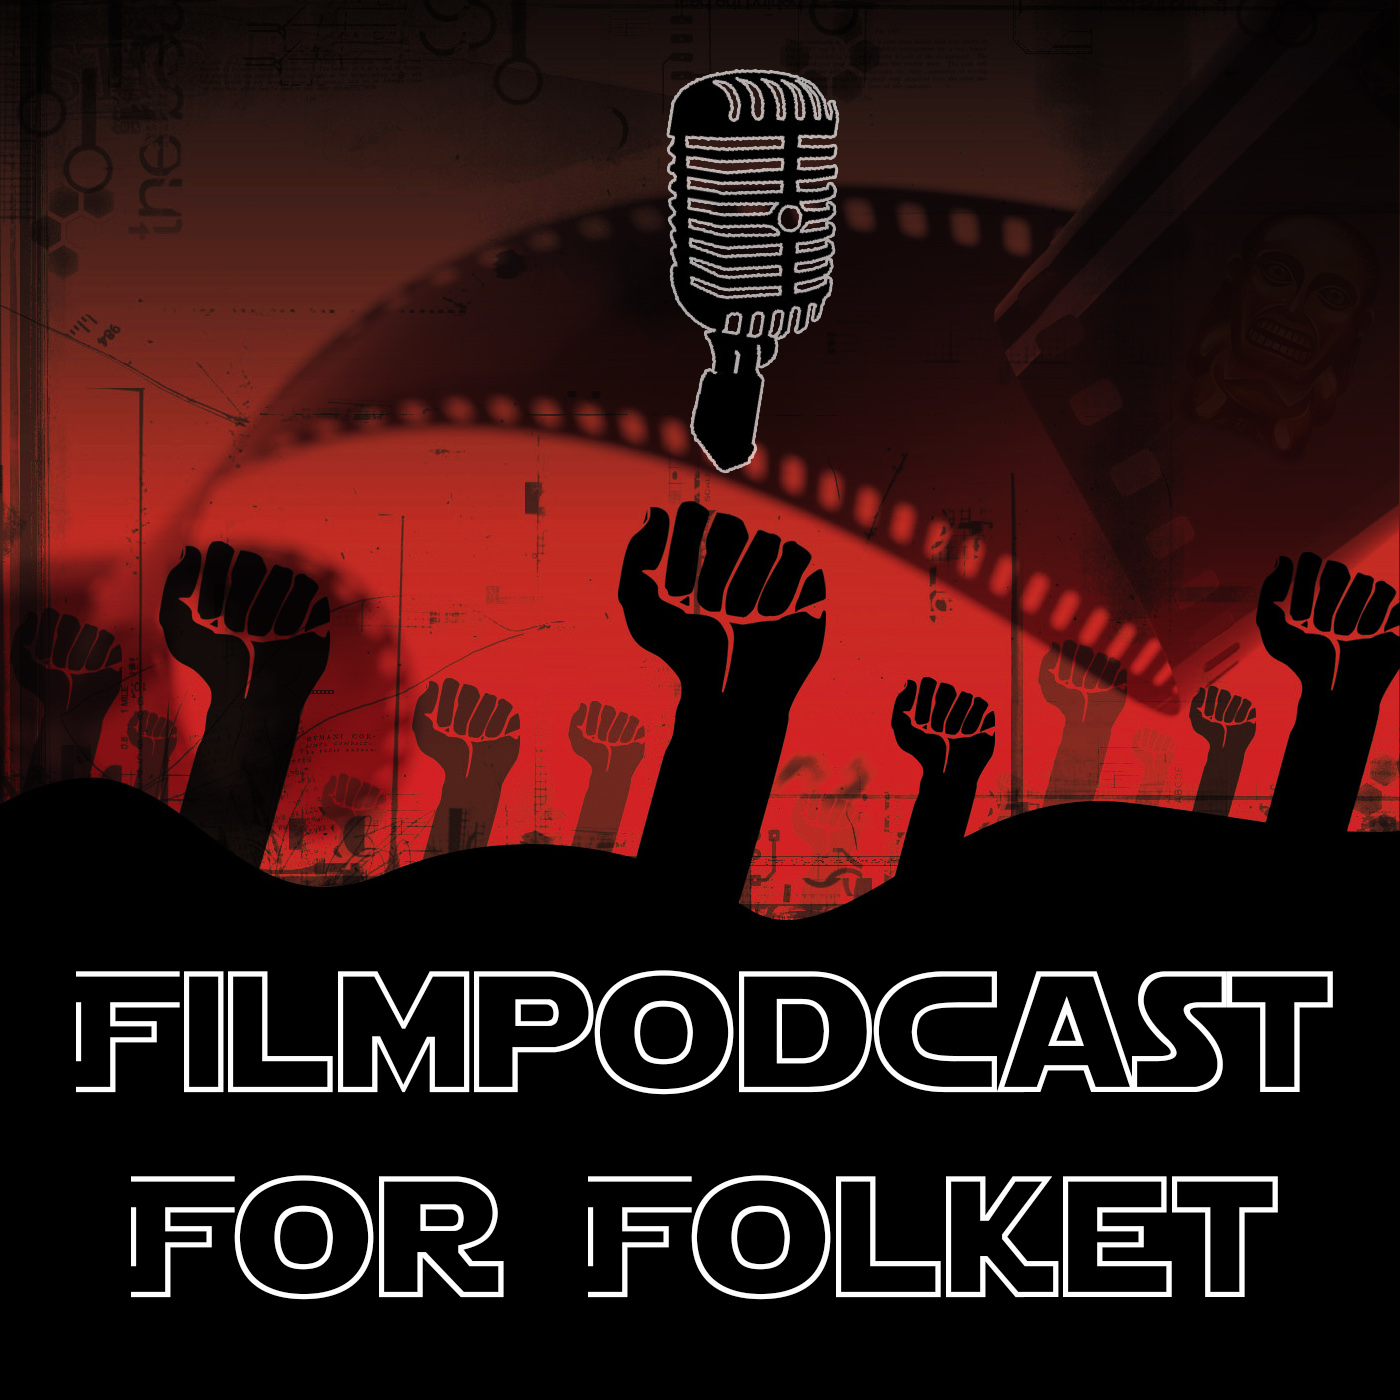 Filmpodcast For Folket